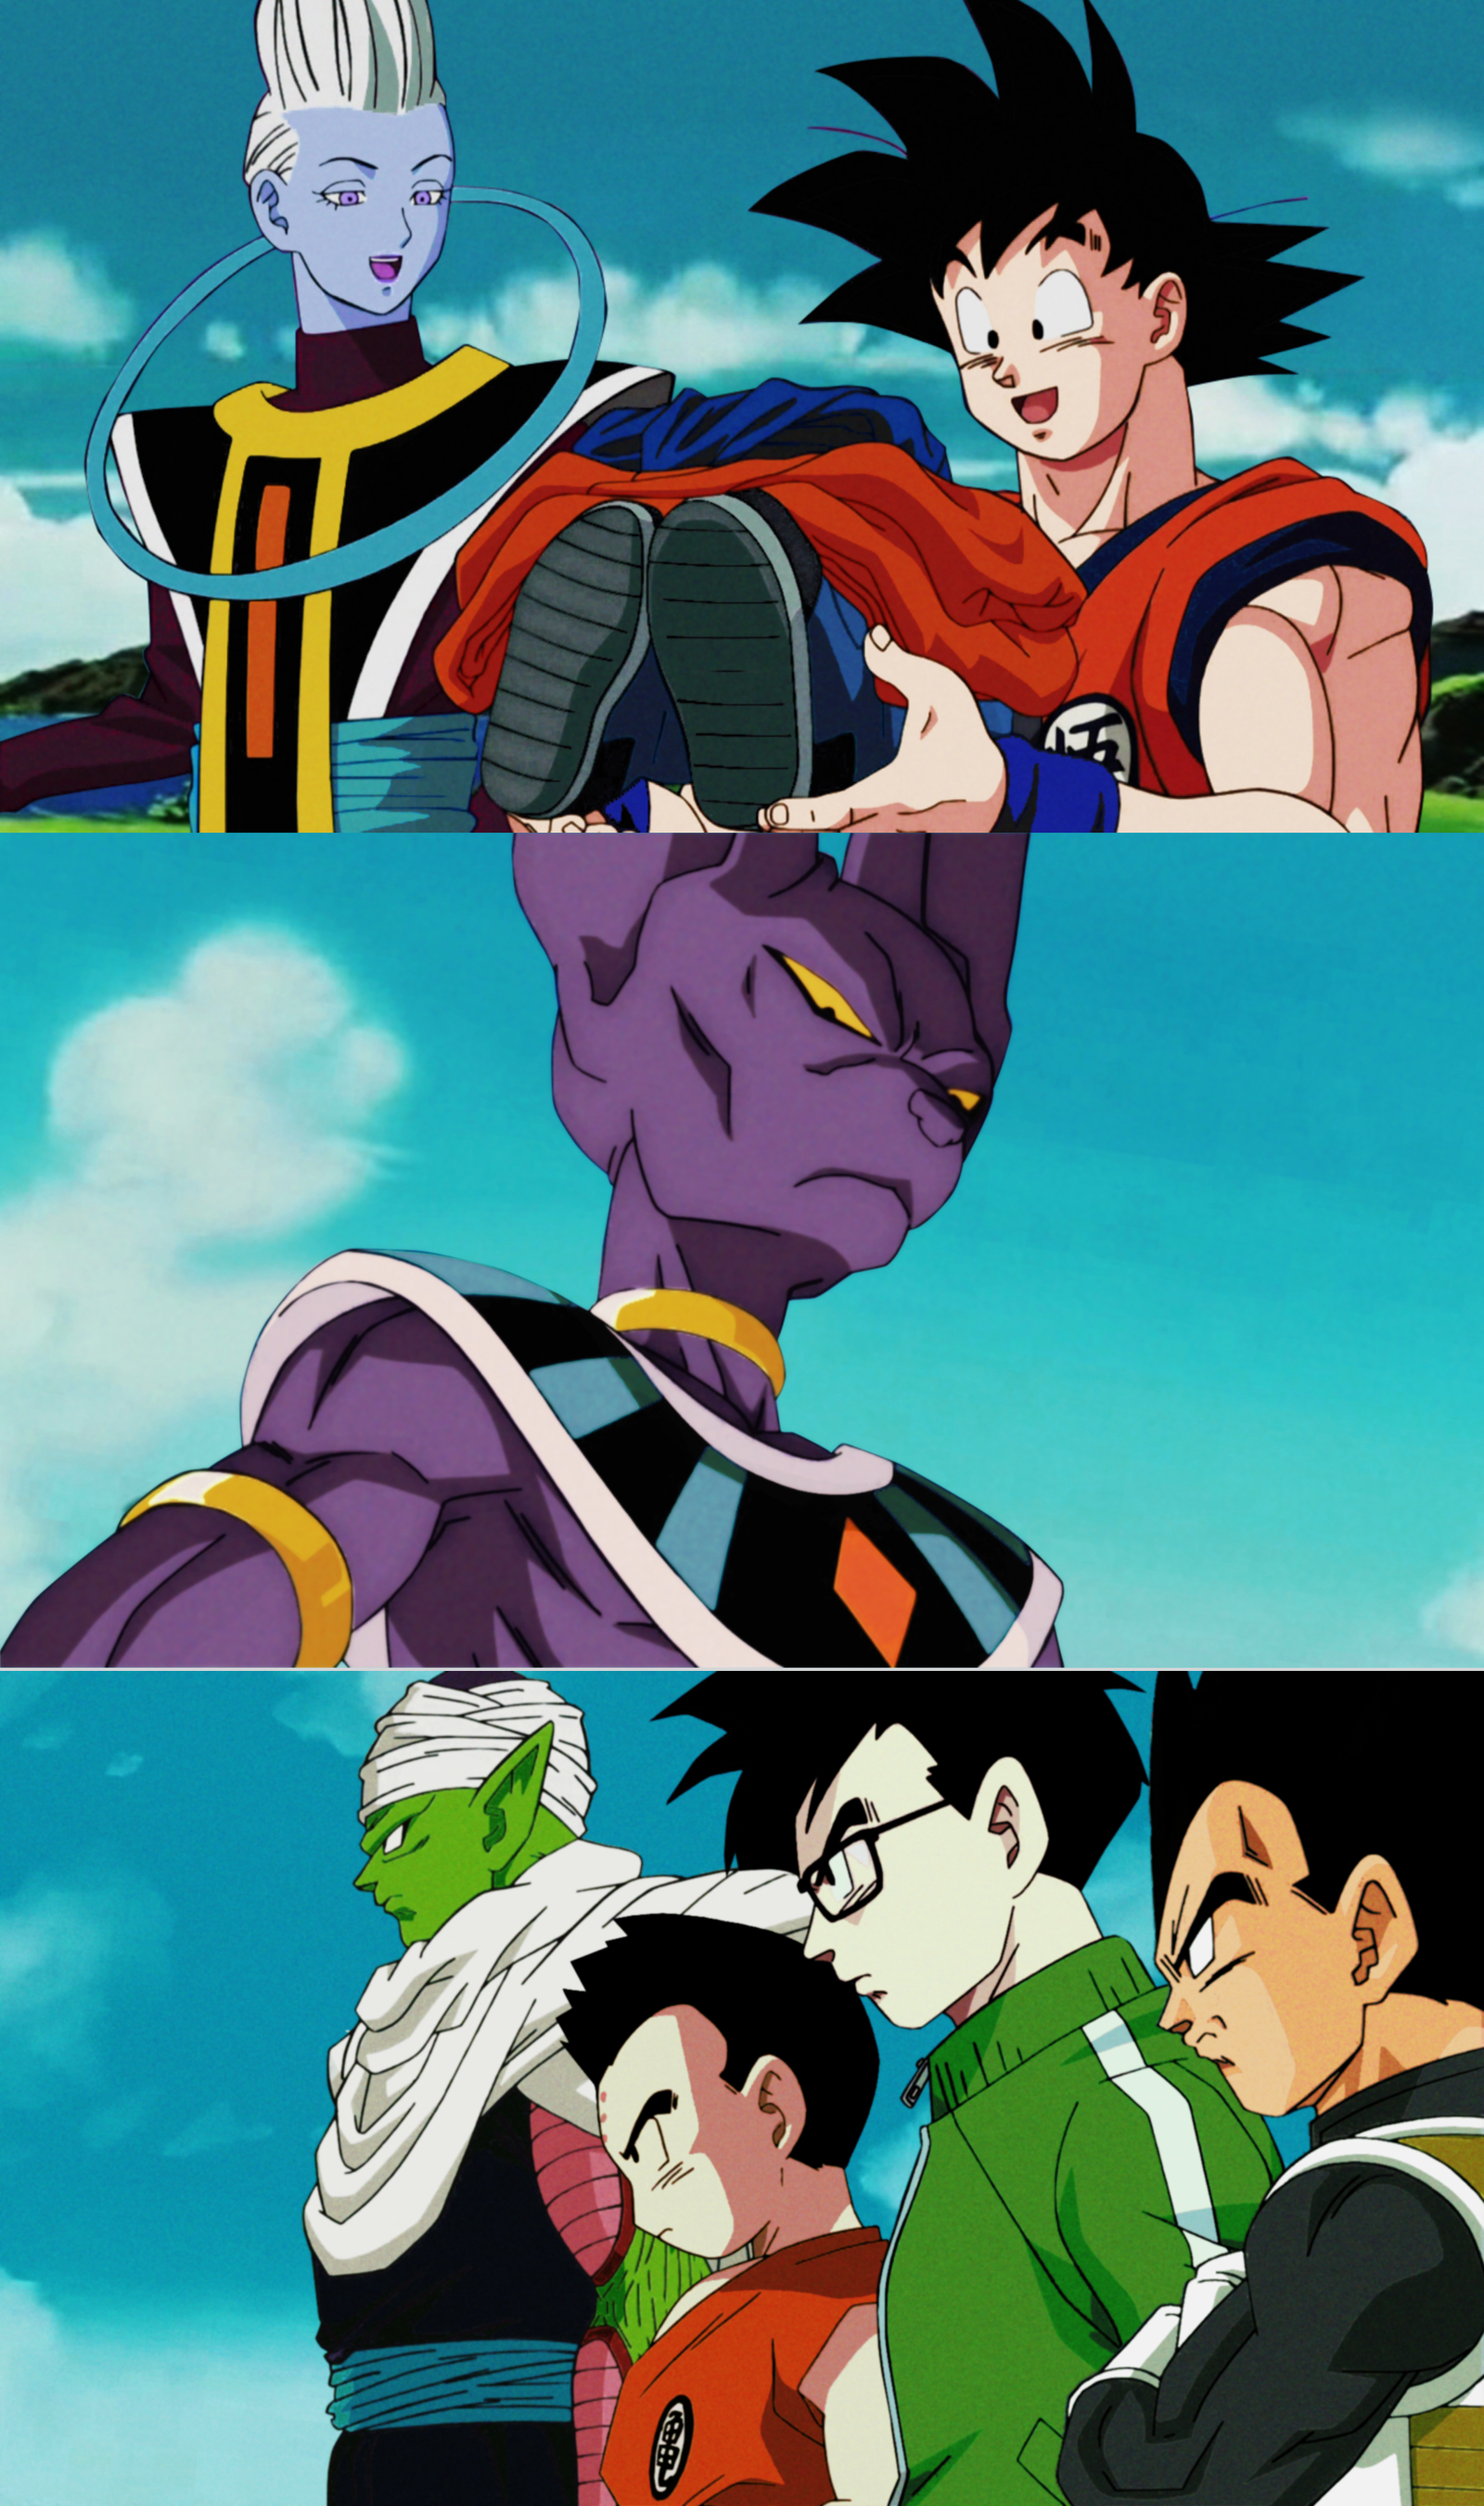 Character Design Dragon Ball Z : I really miss the character designs from dbz